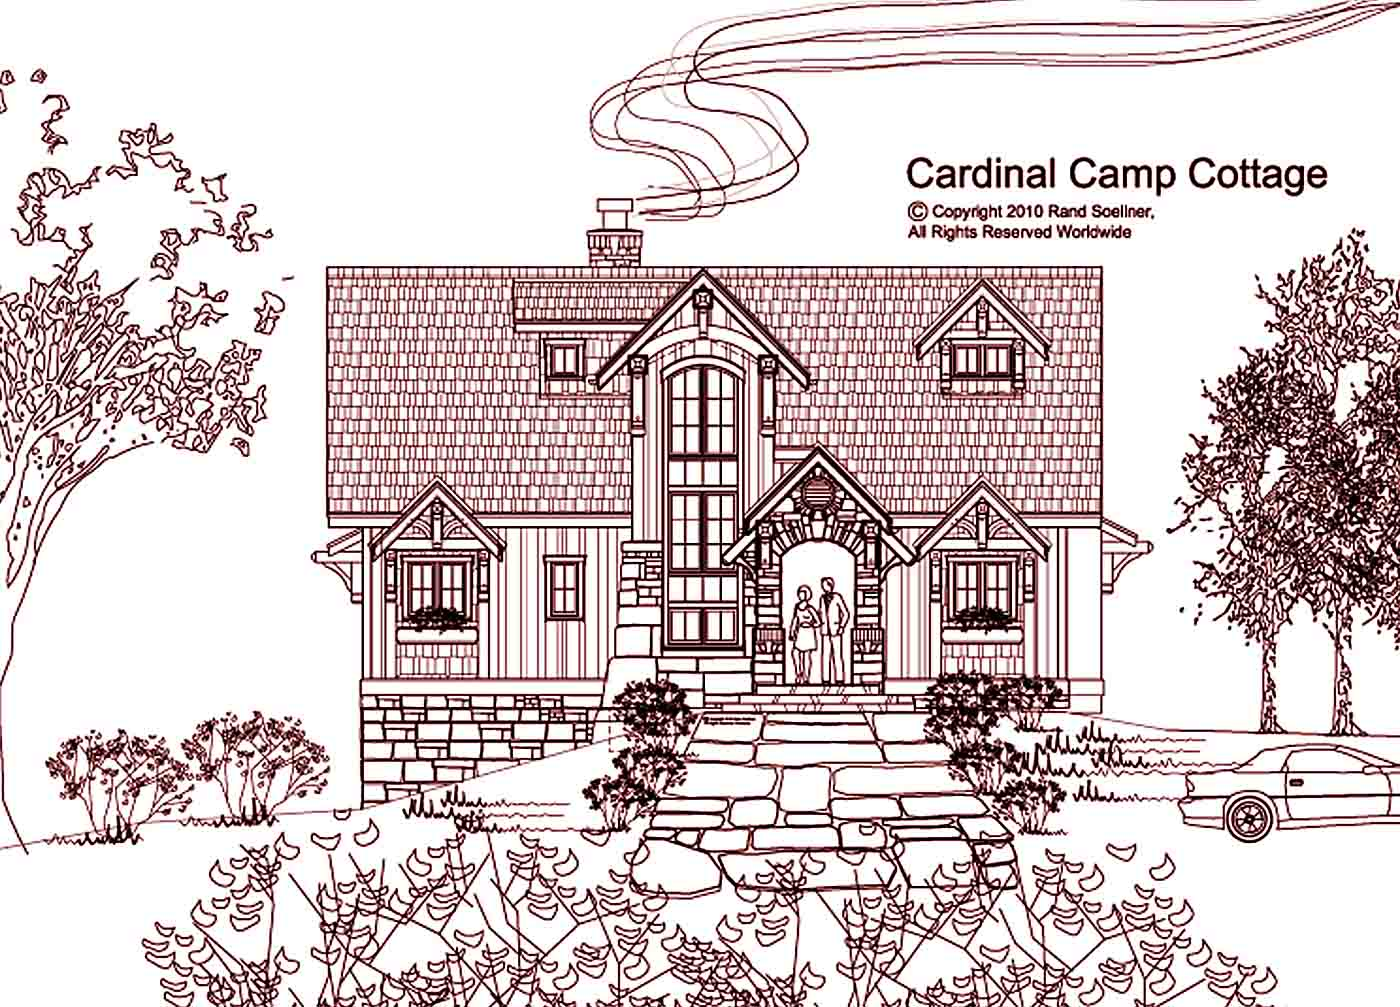 Small luxury residence designs cardinal camp cottages Cottages of camp creek